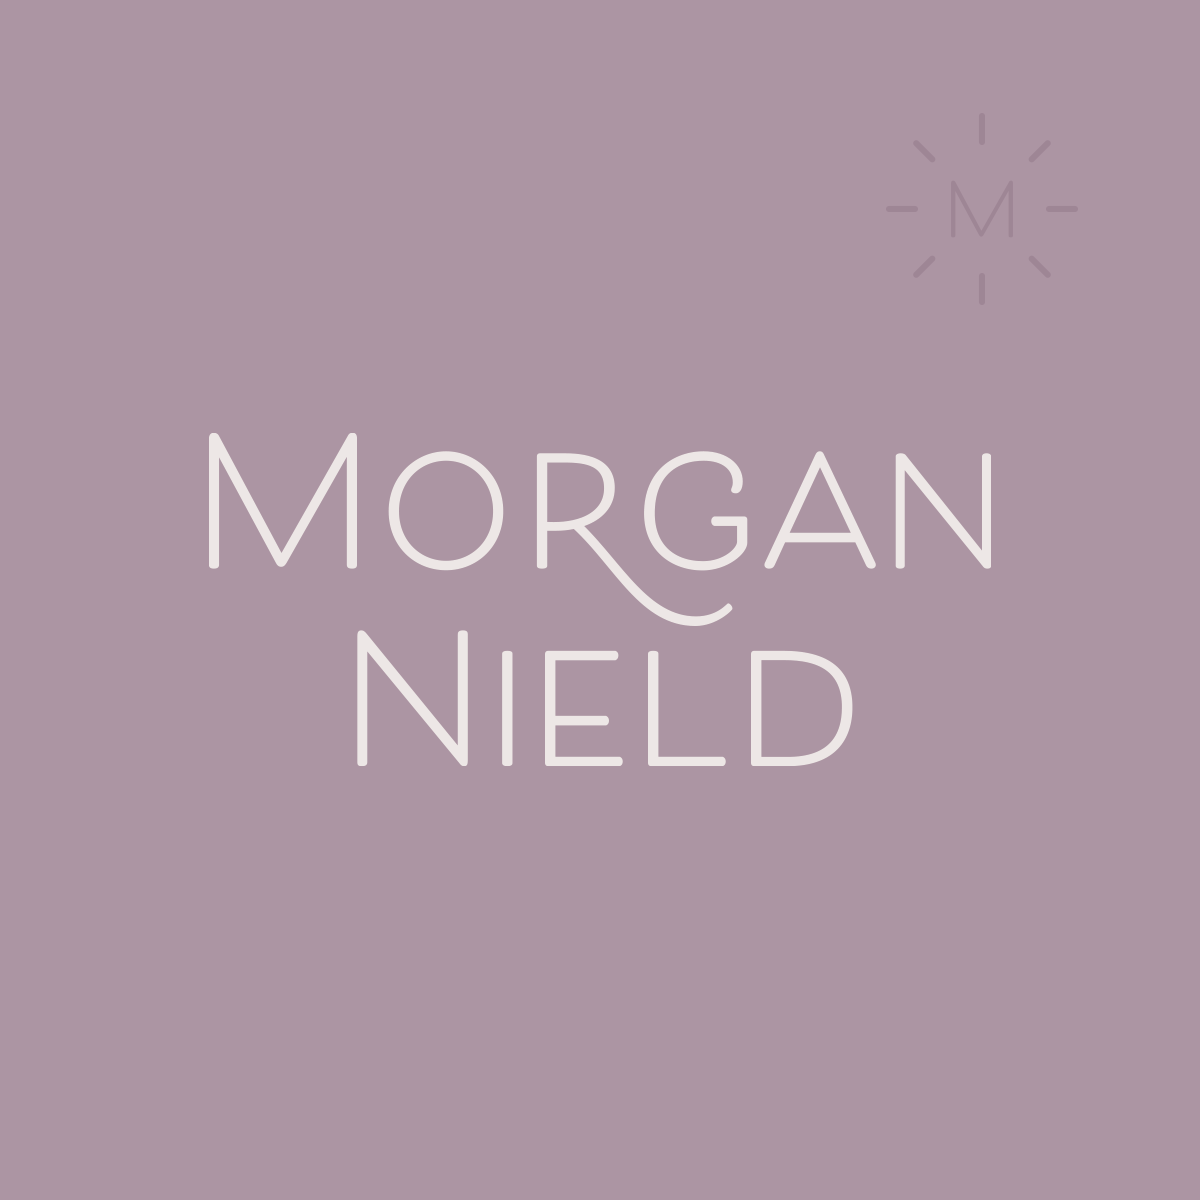 Morgan Nield brand design | Collaboration with Spruce Rd. and Pace Creative Design Studio